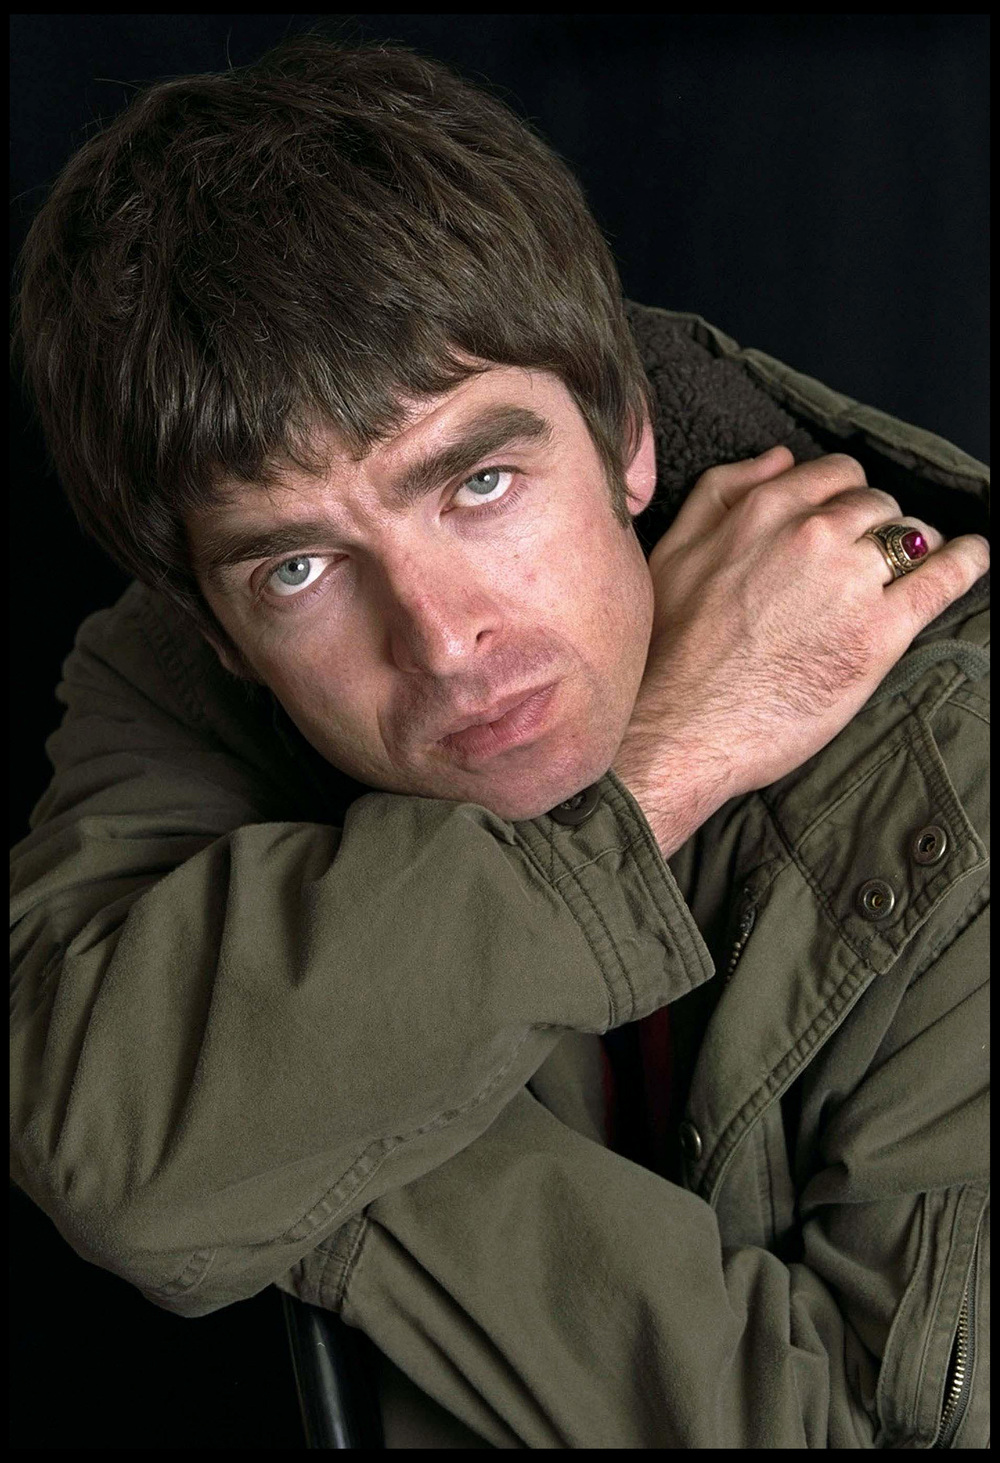 Noel Gallagher, musician